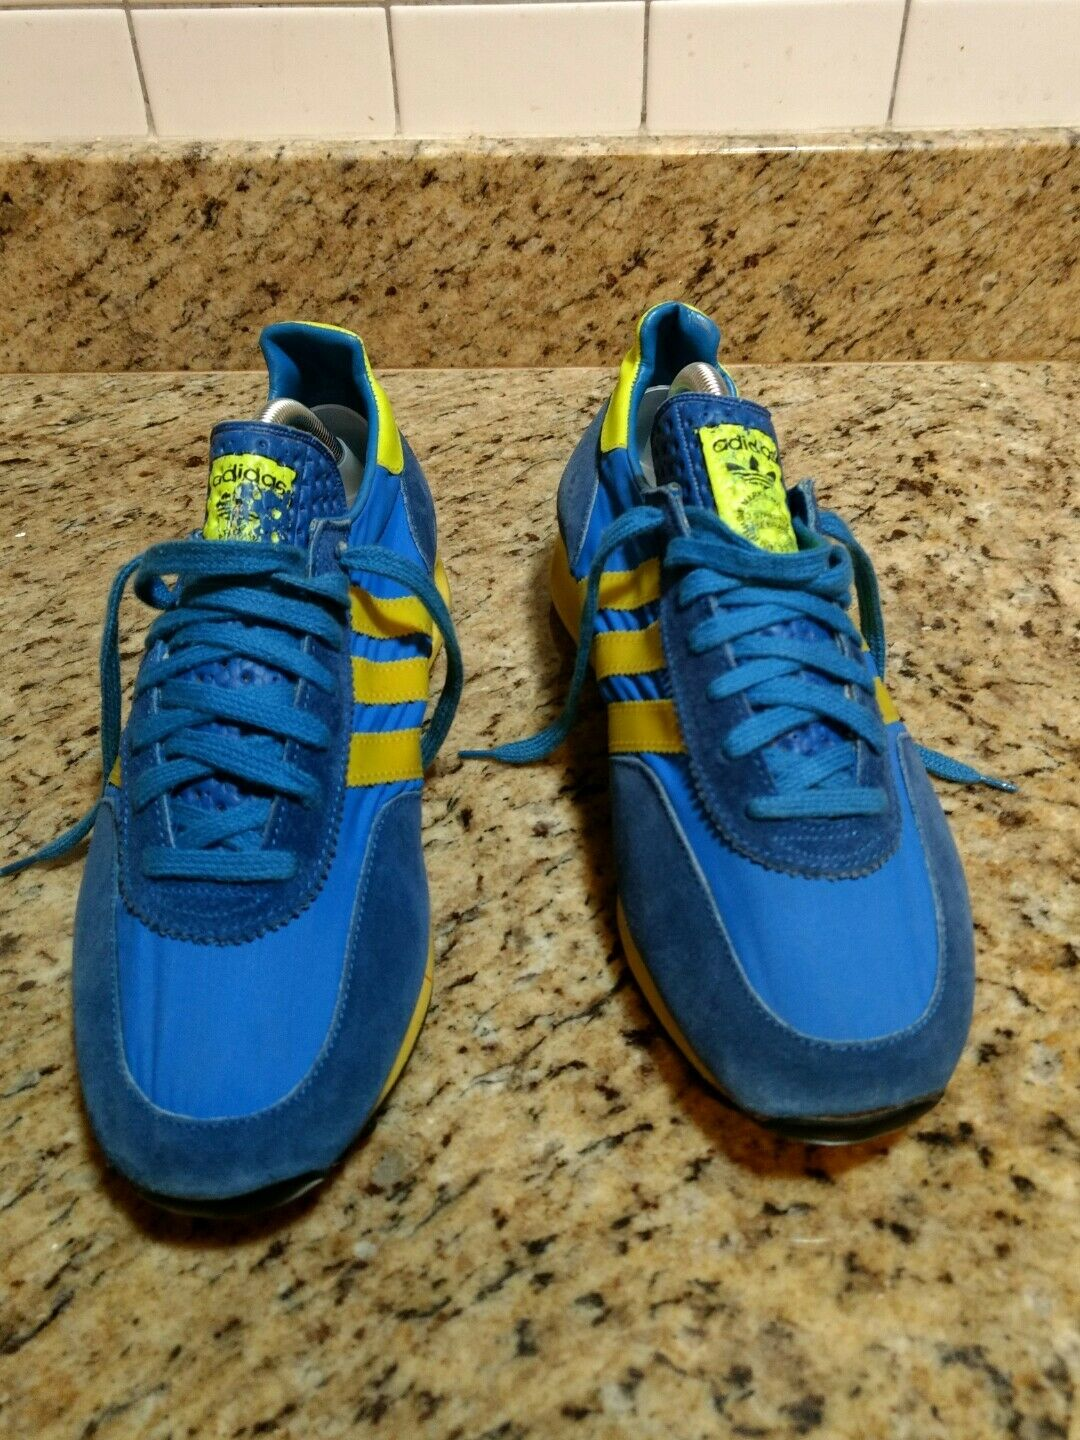 Vintage Adidas 8 TRX Running Shoes Rare  Size 8 Adidas Made in Yugoslavia 675071